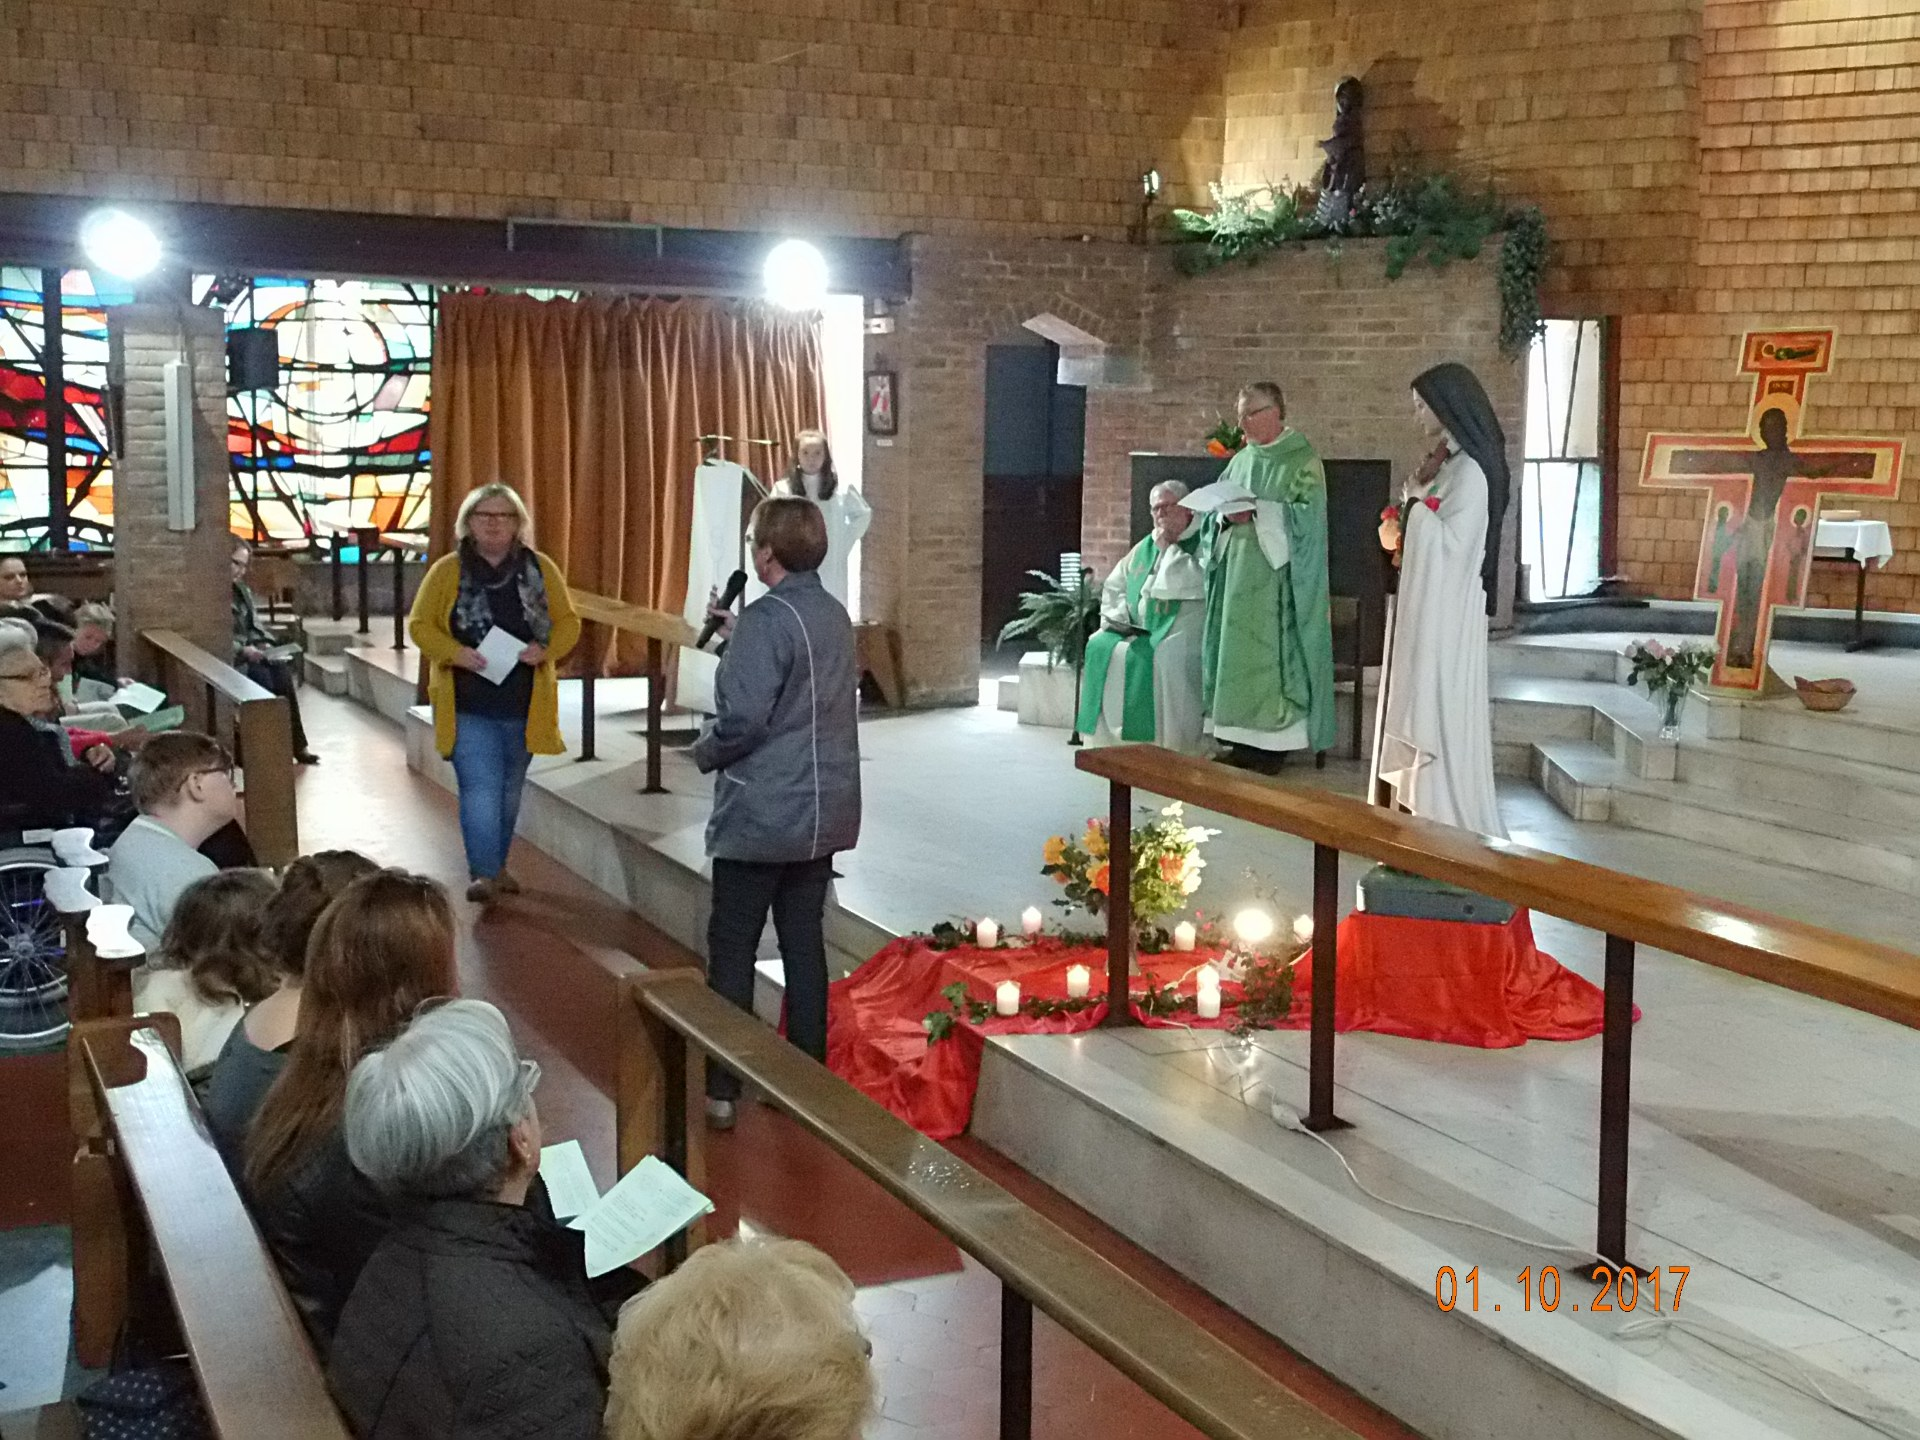 1-10-2017-Ste Therese (100)